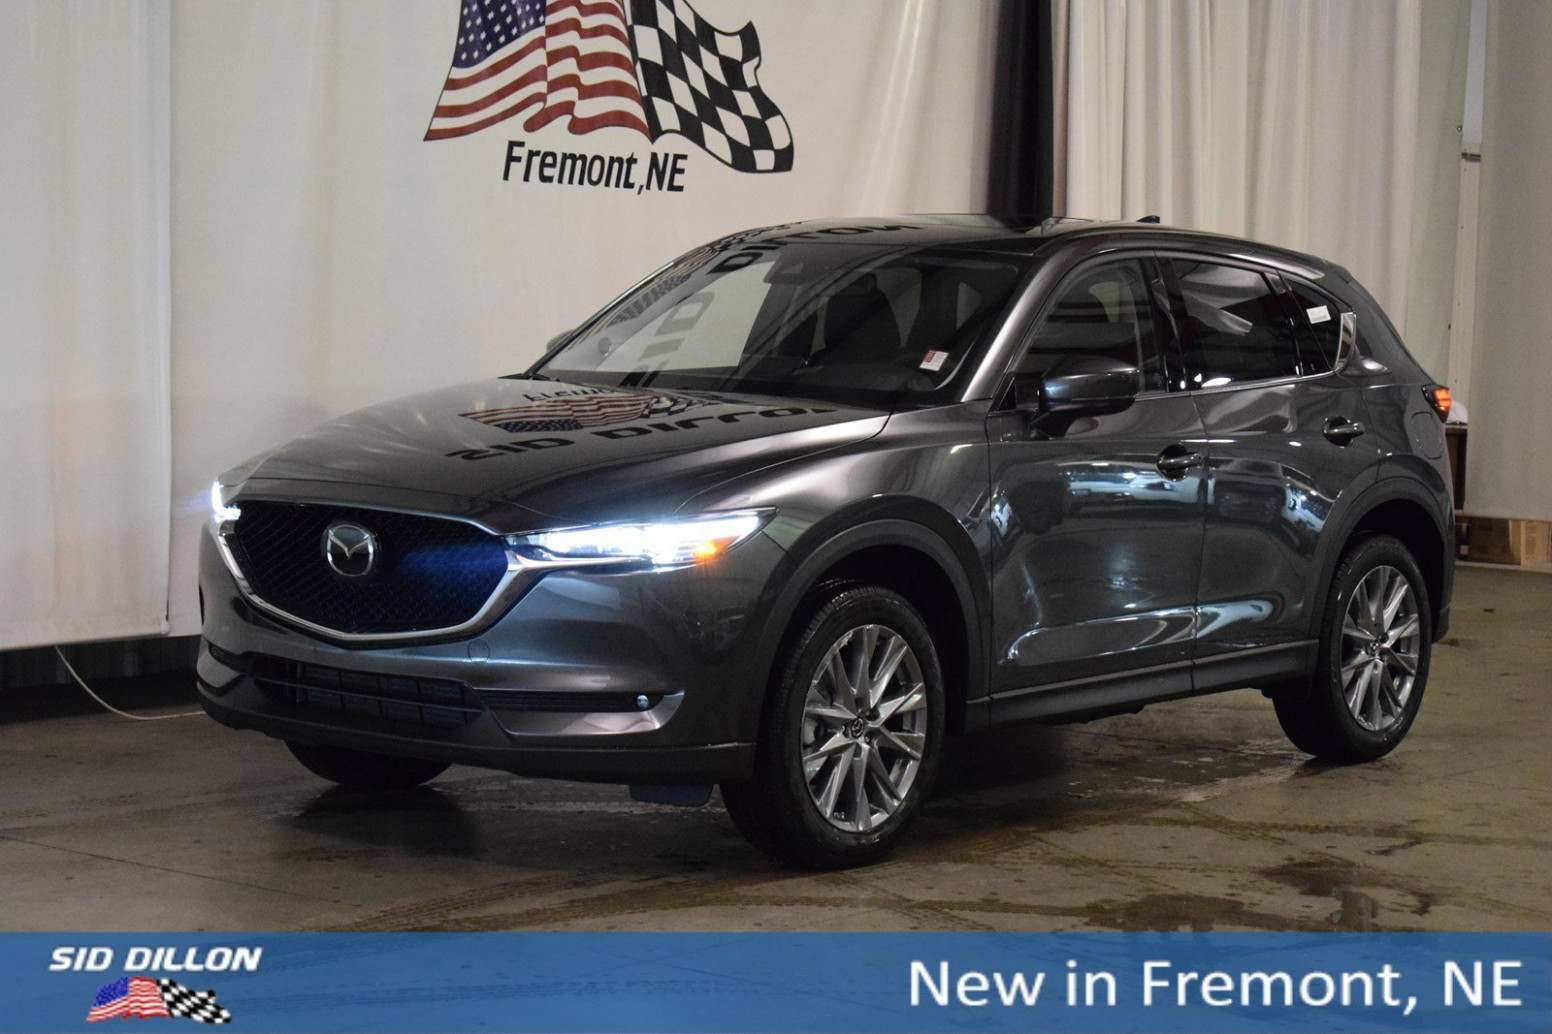 New 11 Mazda CX-11 Grand Touring Reserve AWD